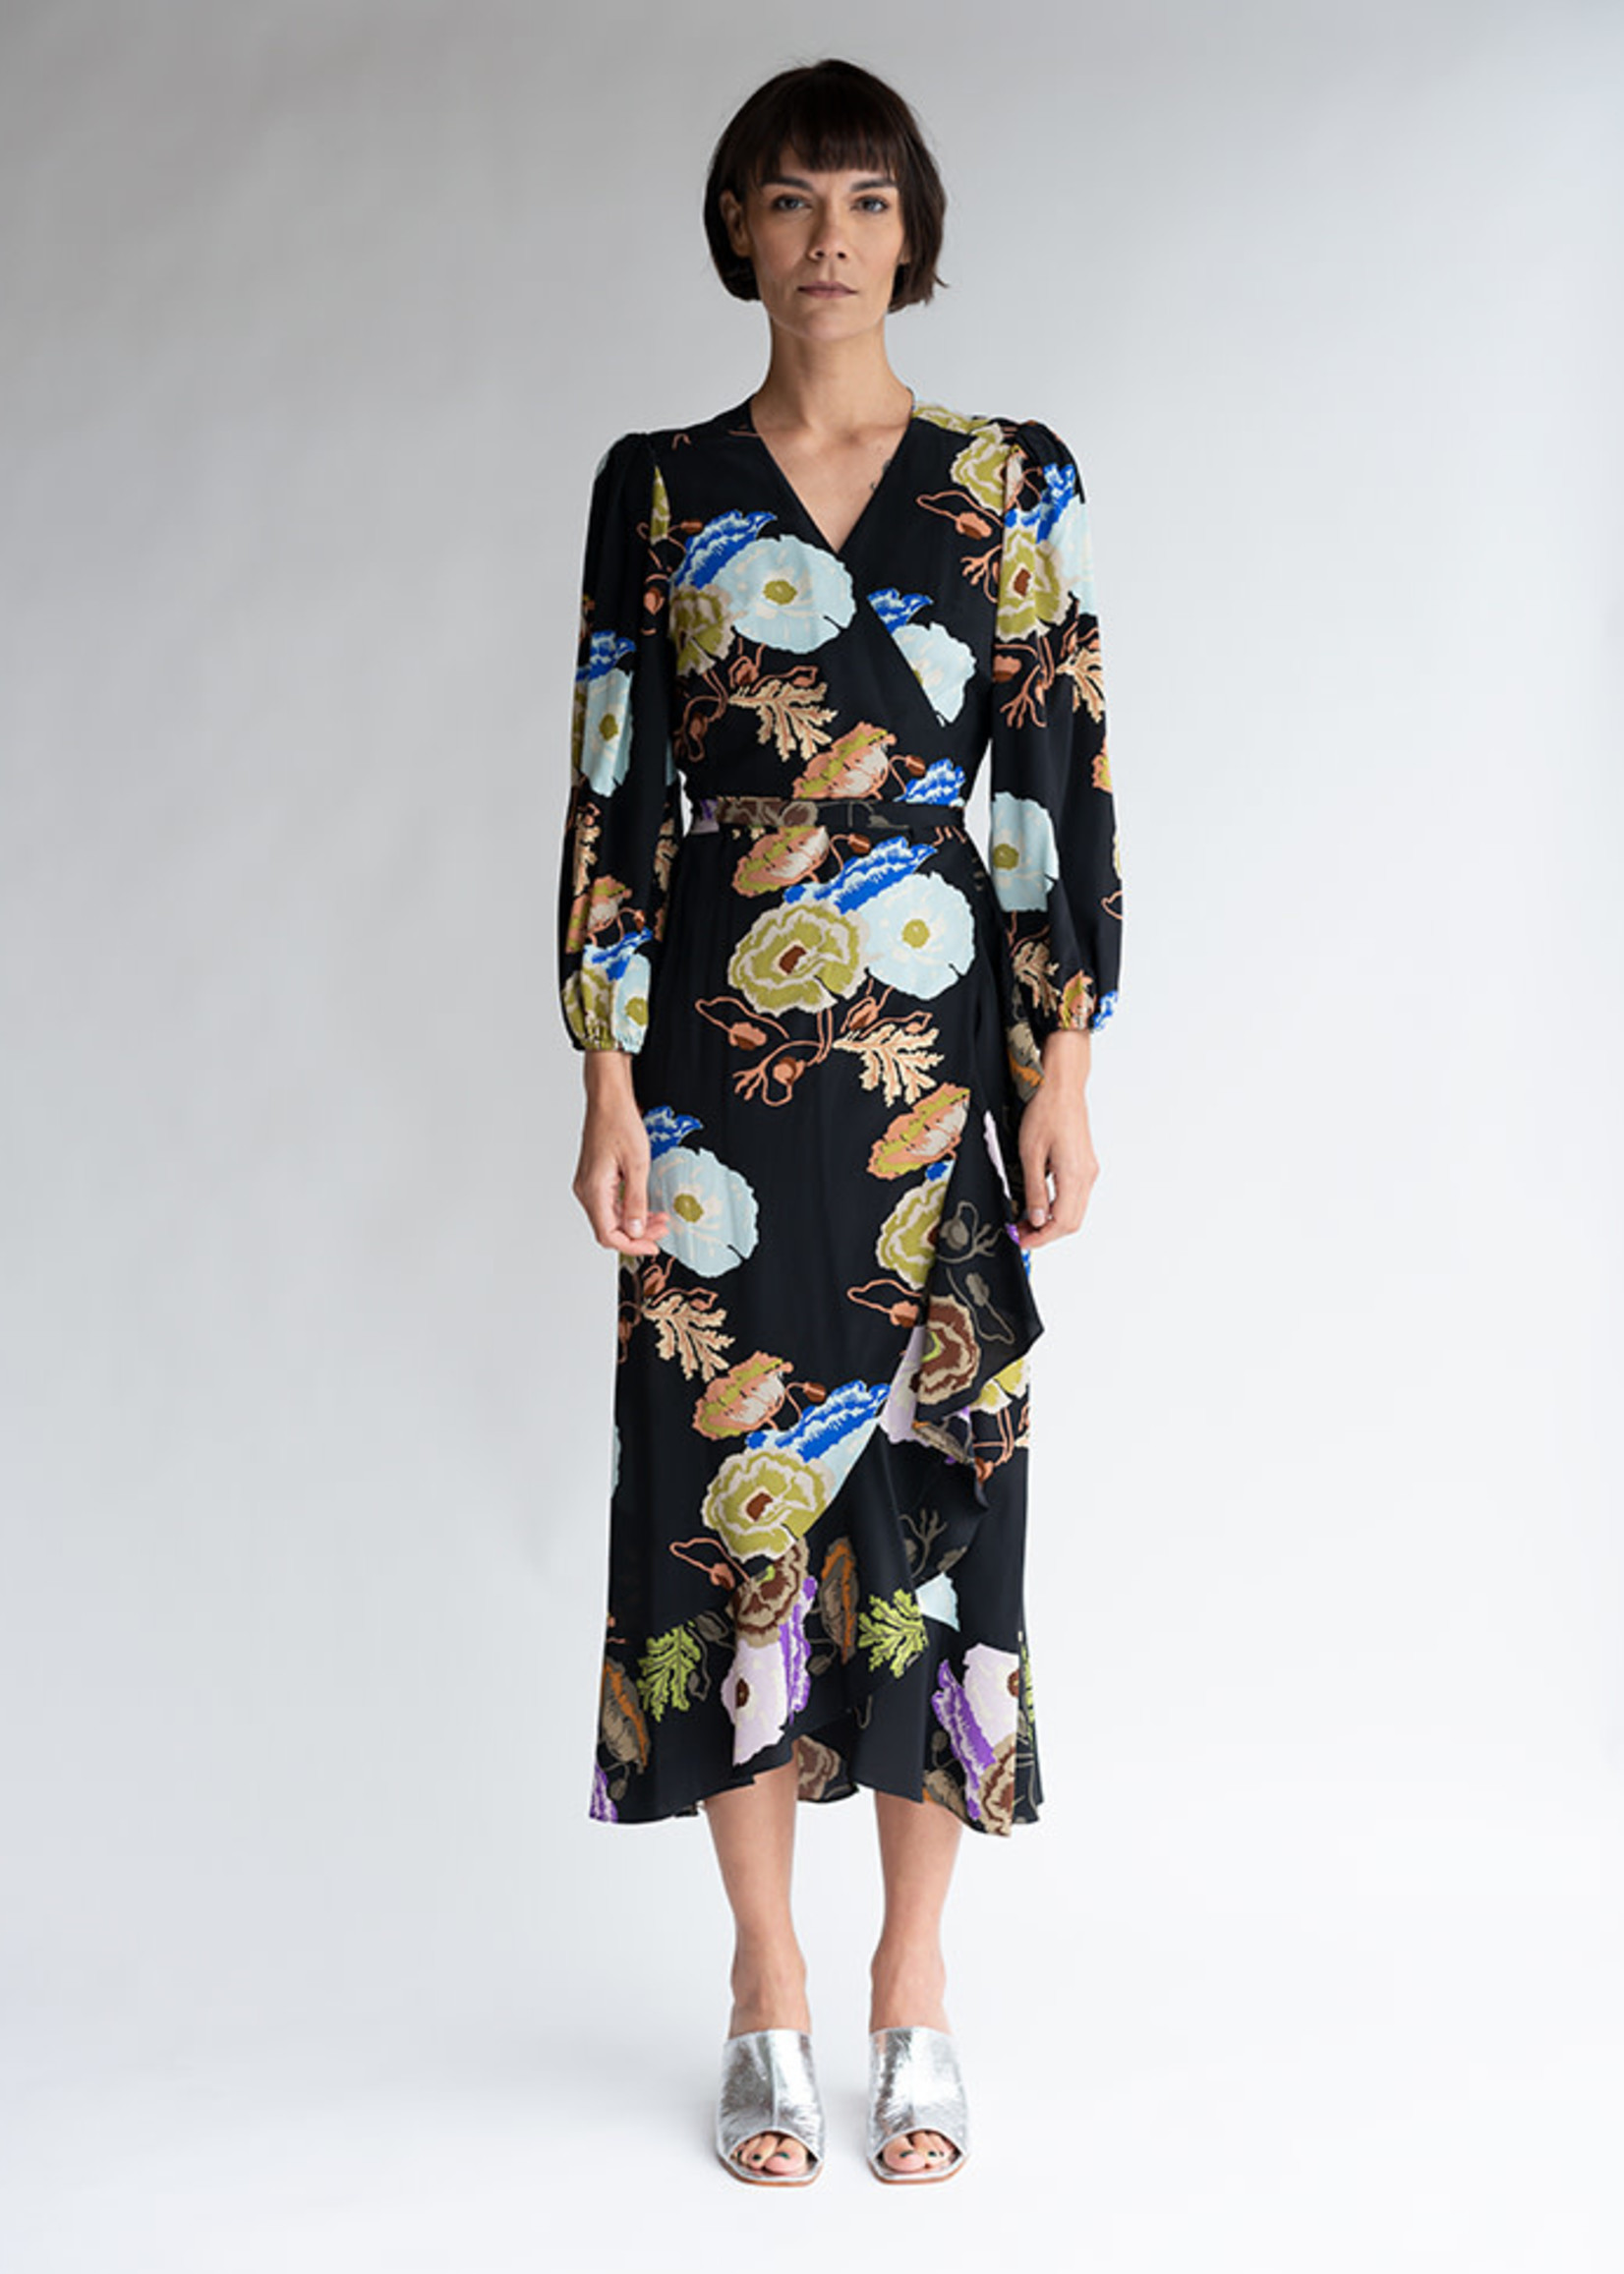 Noma Wrap Dress in Black/Blue/Lilac Hyacinth Silk